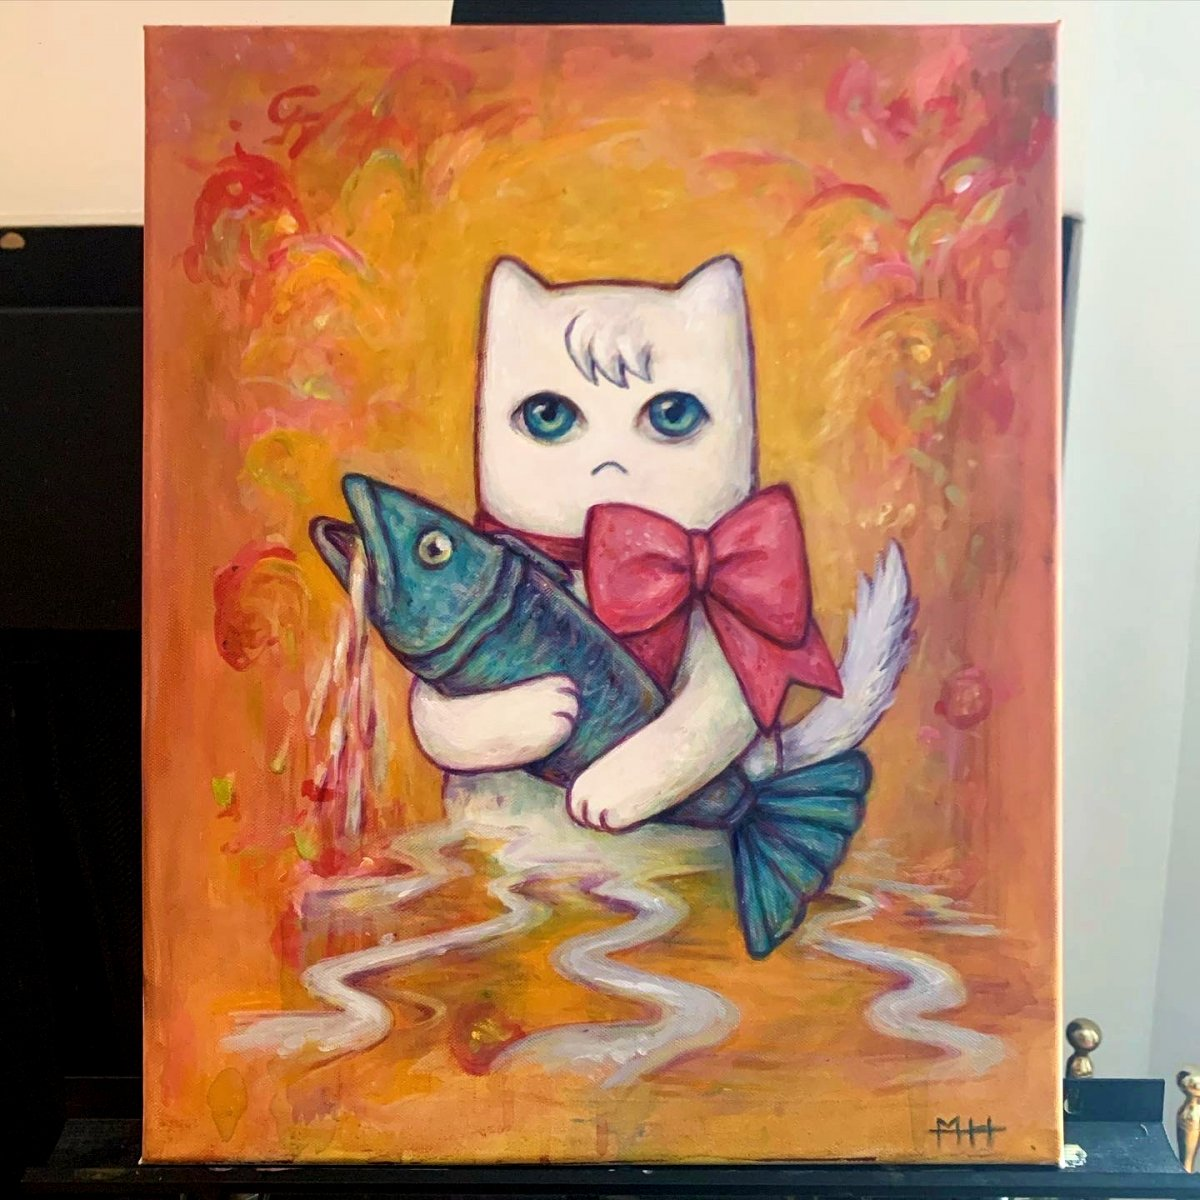 Painting of Sociopathic Cat from sorrowbacon